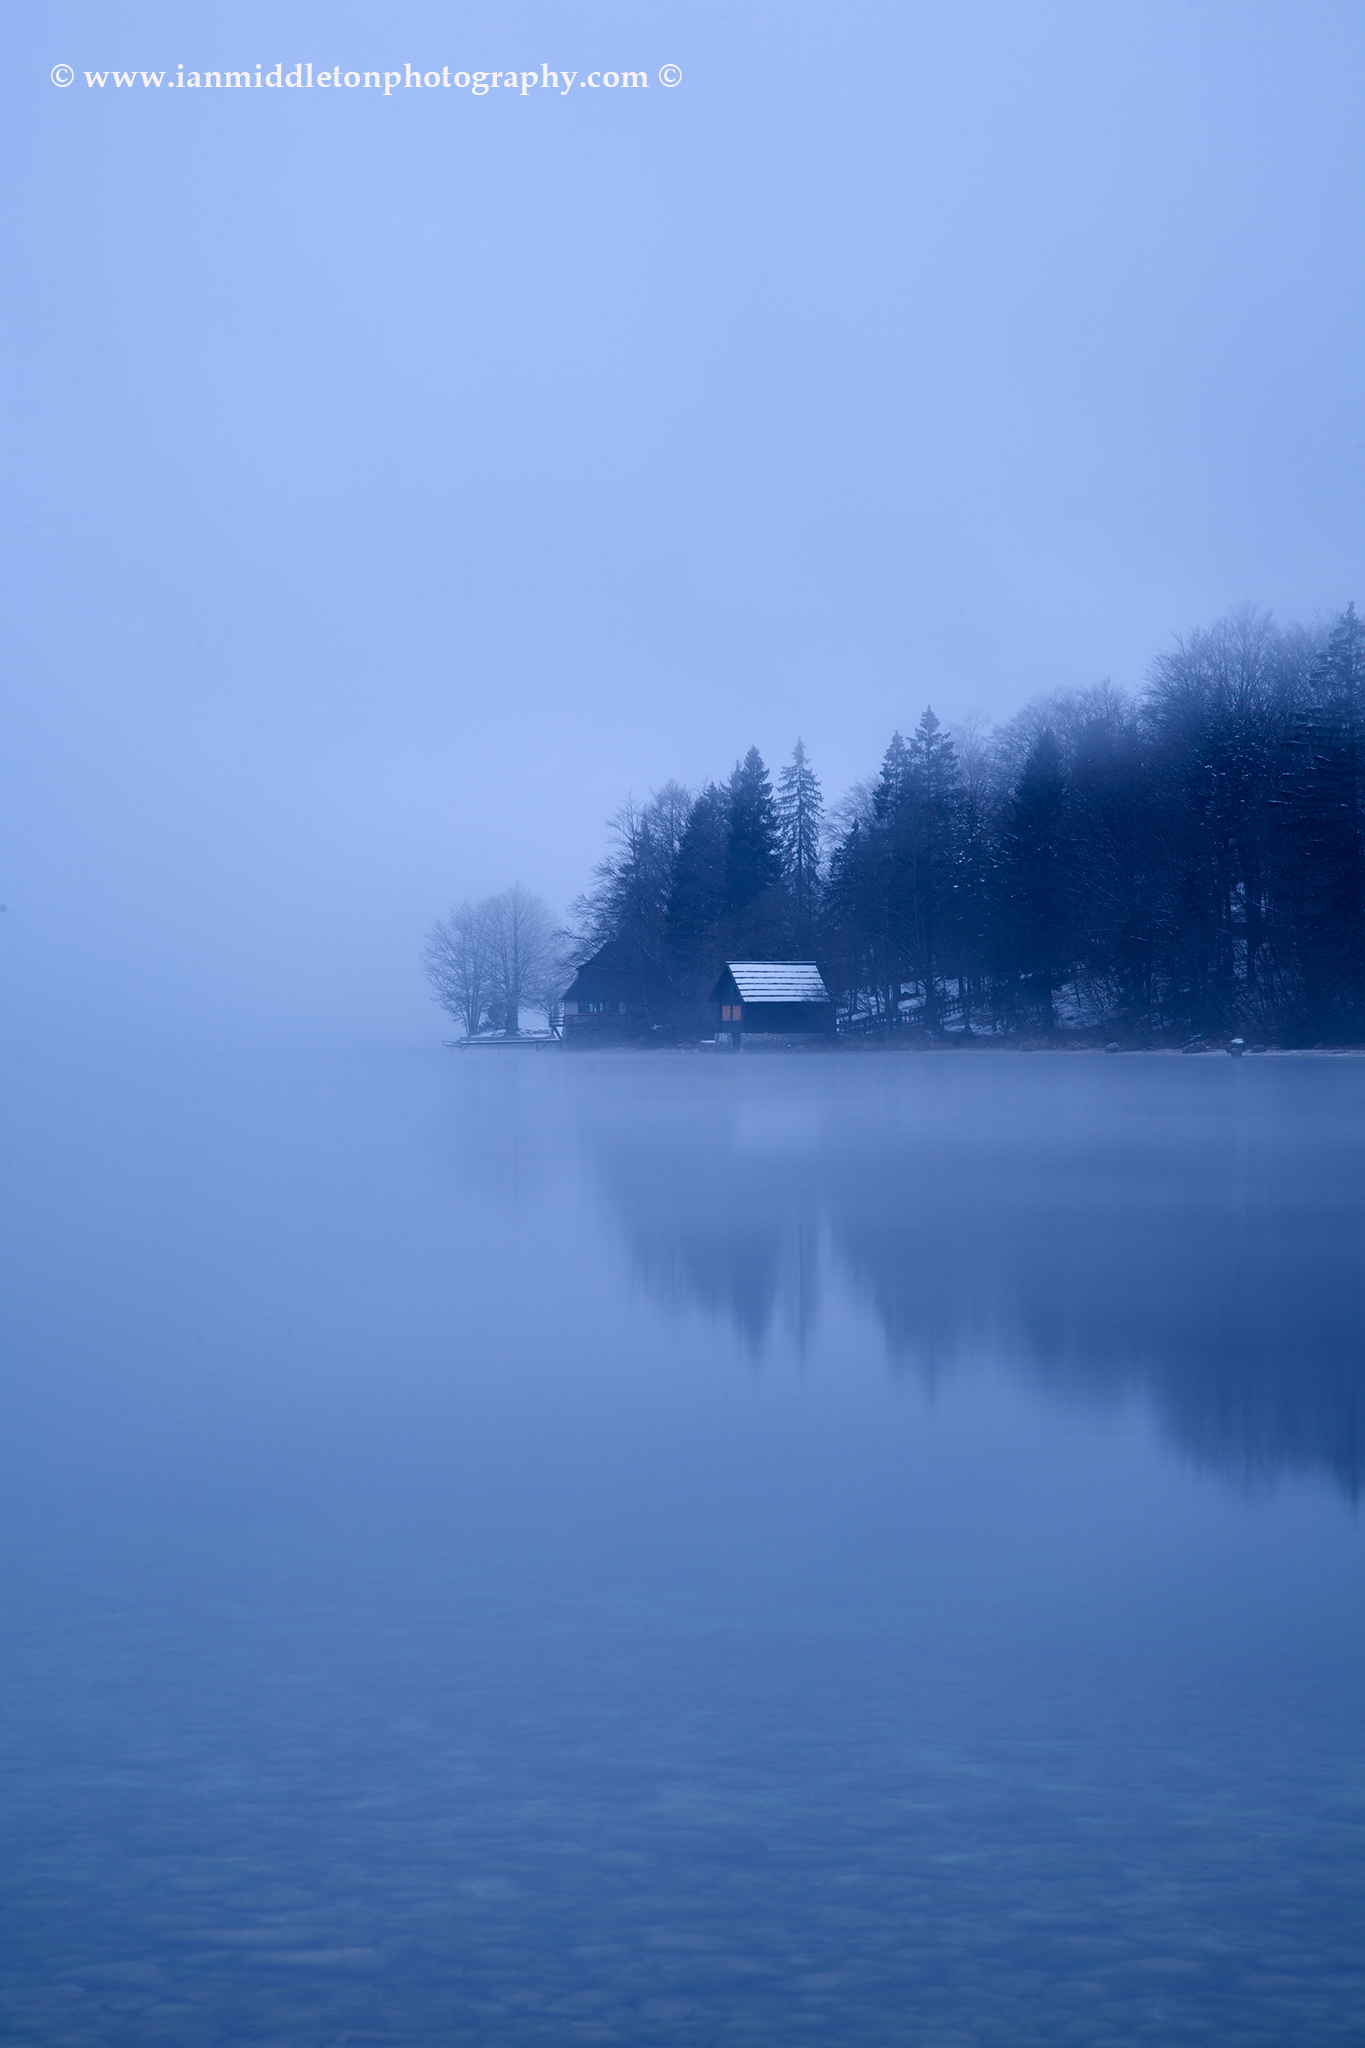 Lake Bohinj at the first dawn of the new year, Triglav National Park, Slovenia. Taken New Year Day 2012.